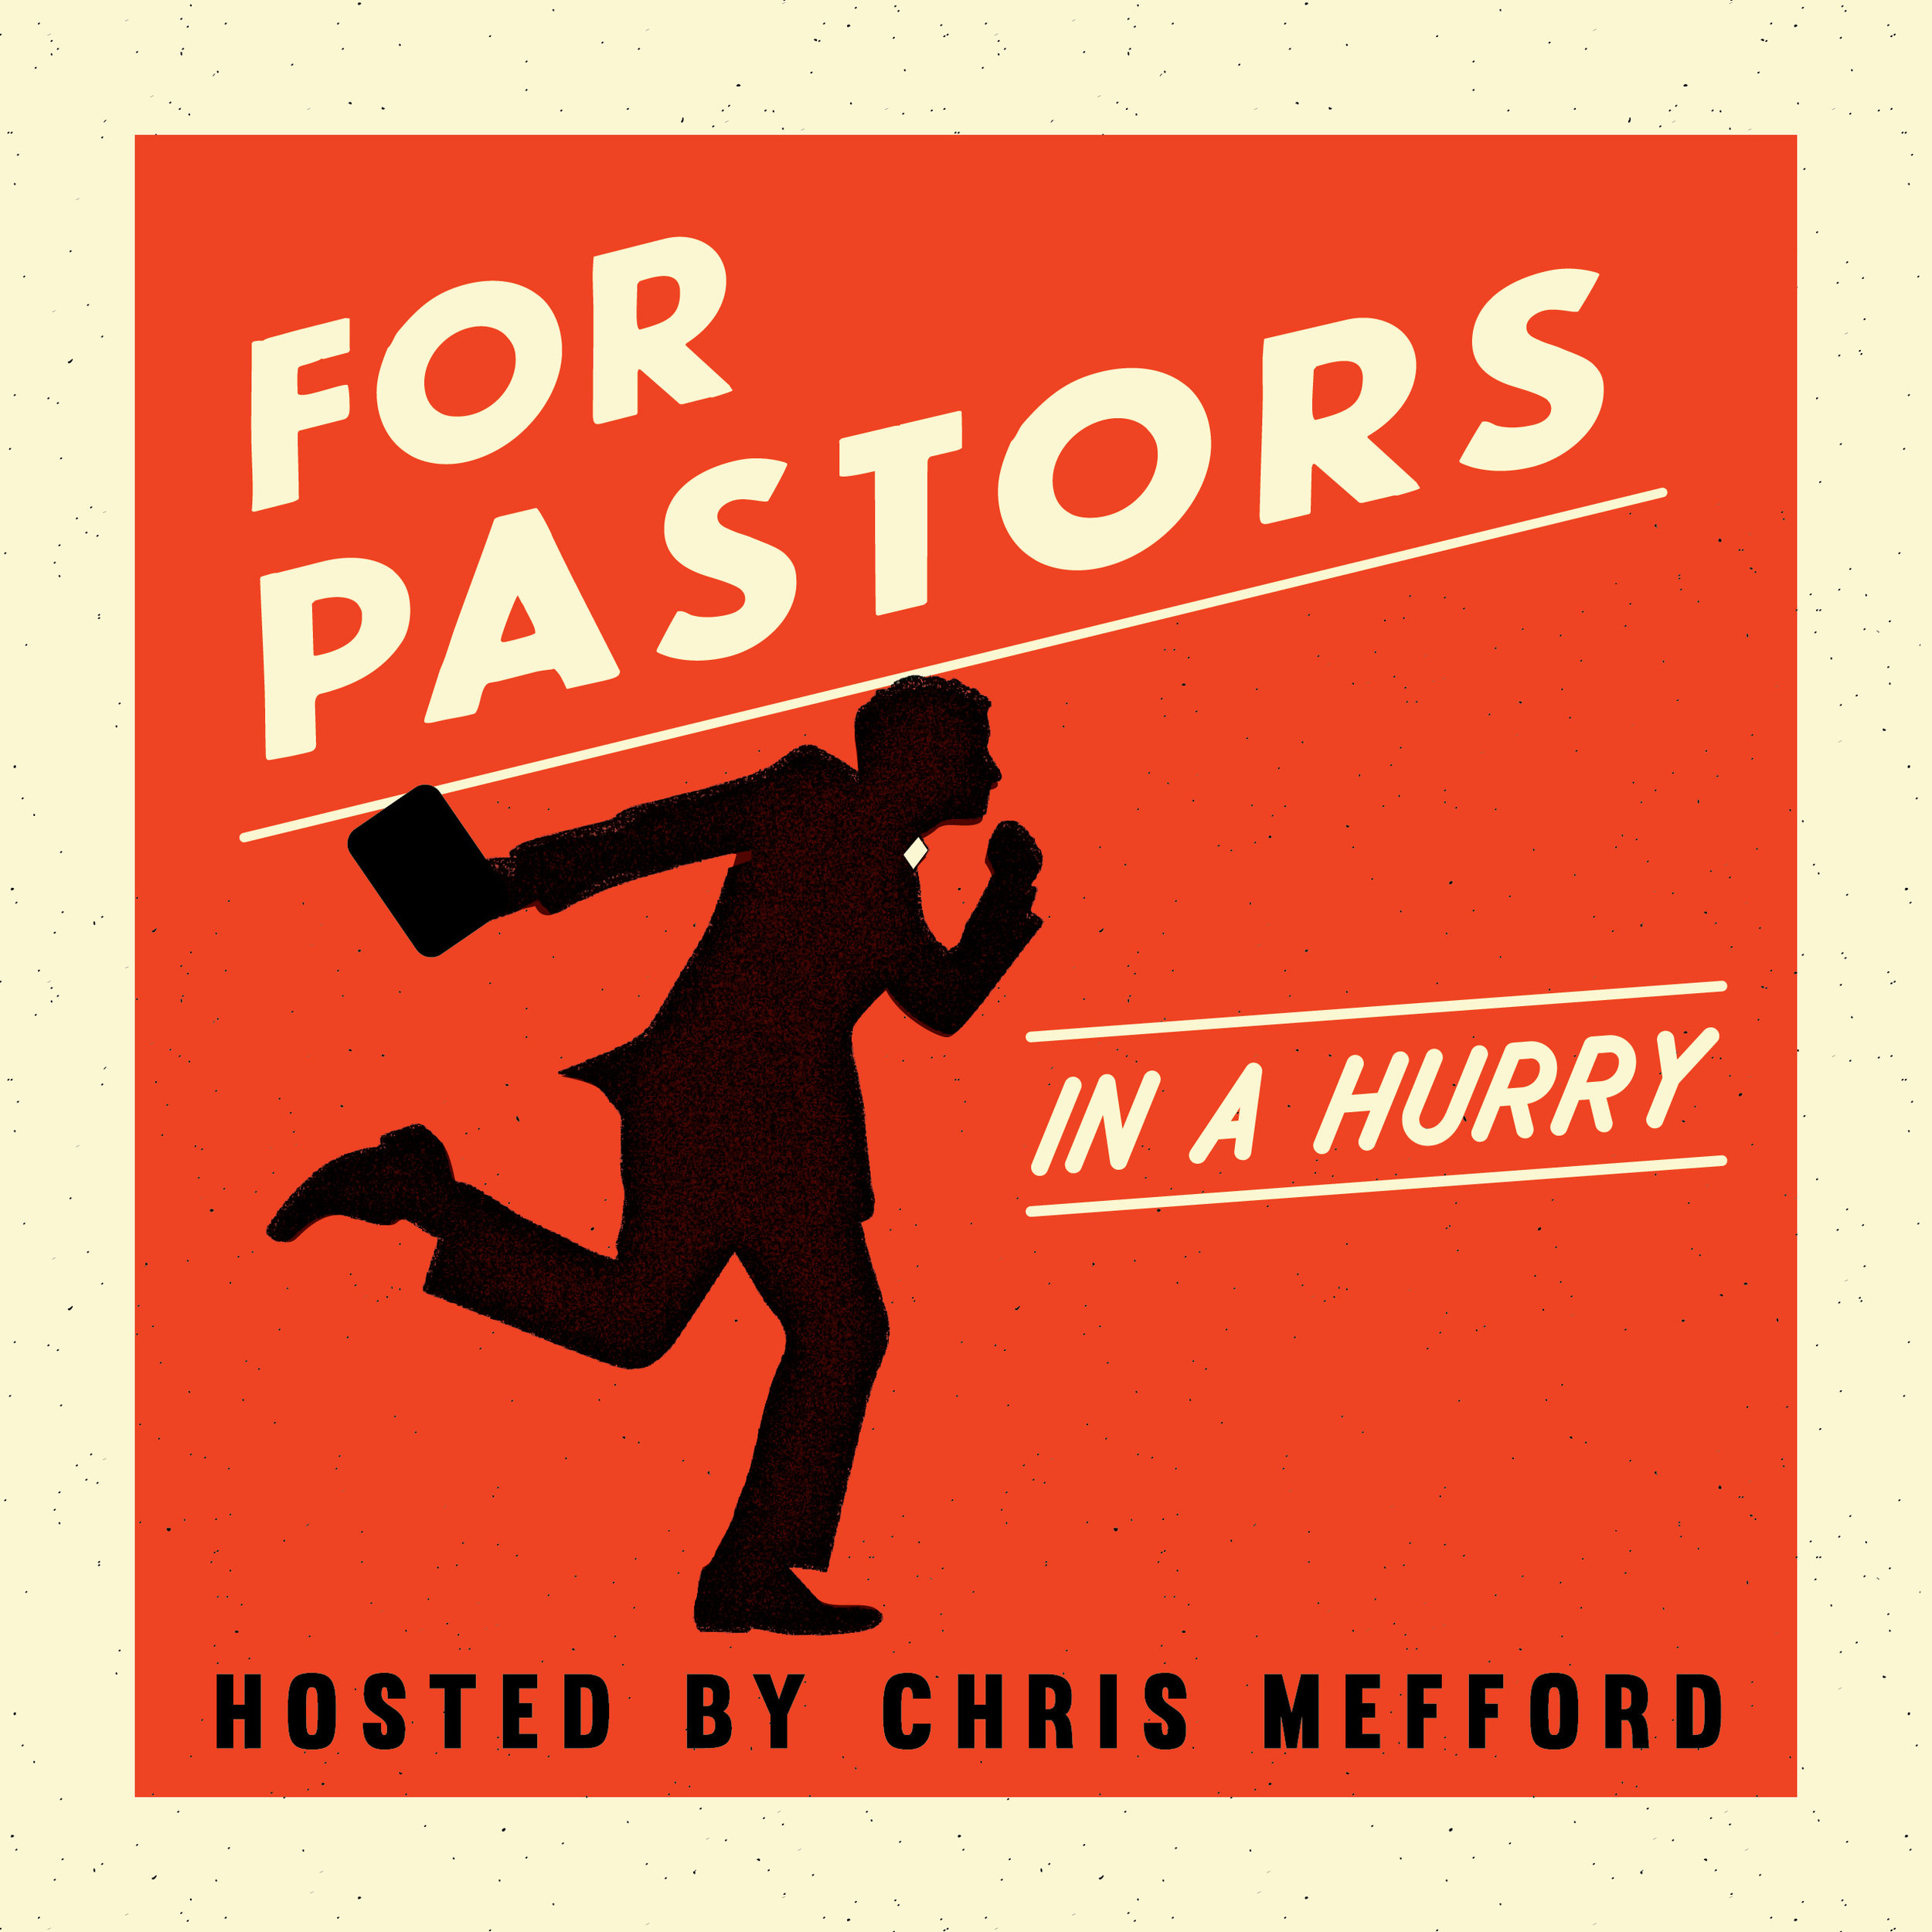 For Pastors In A Hurry3-01-01.jpg